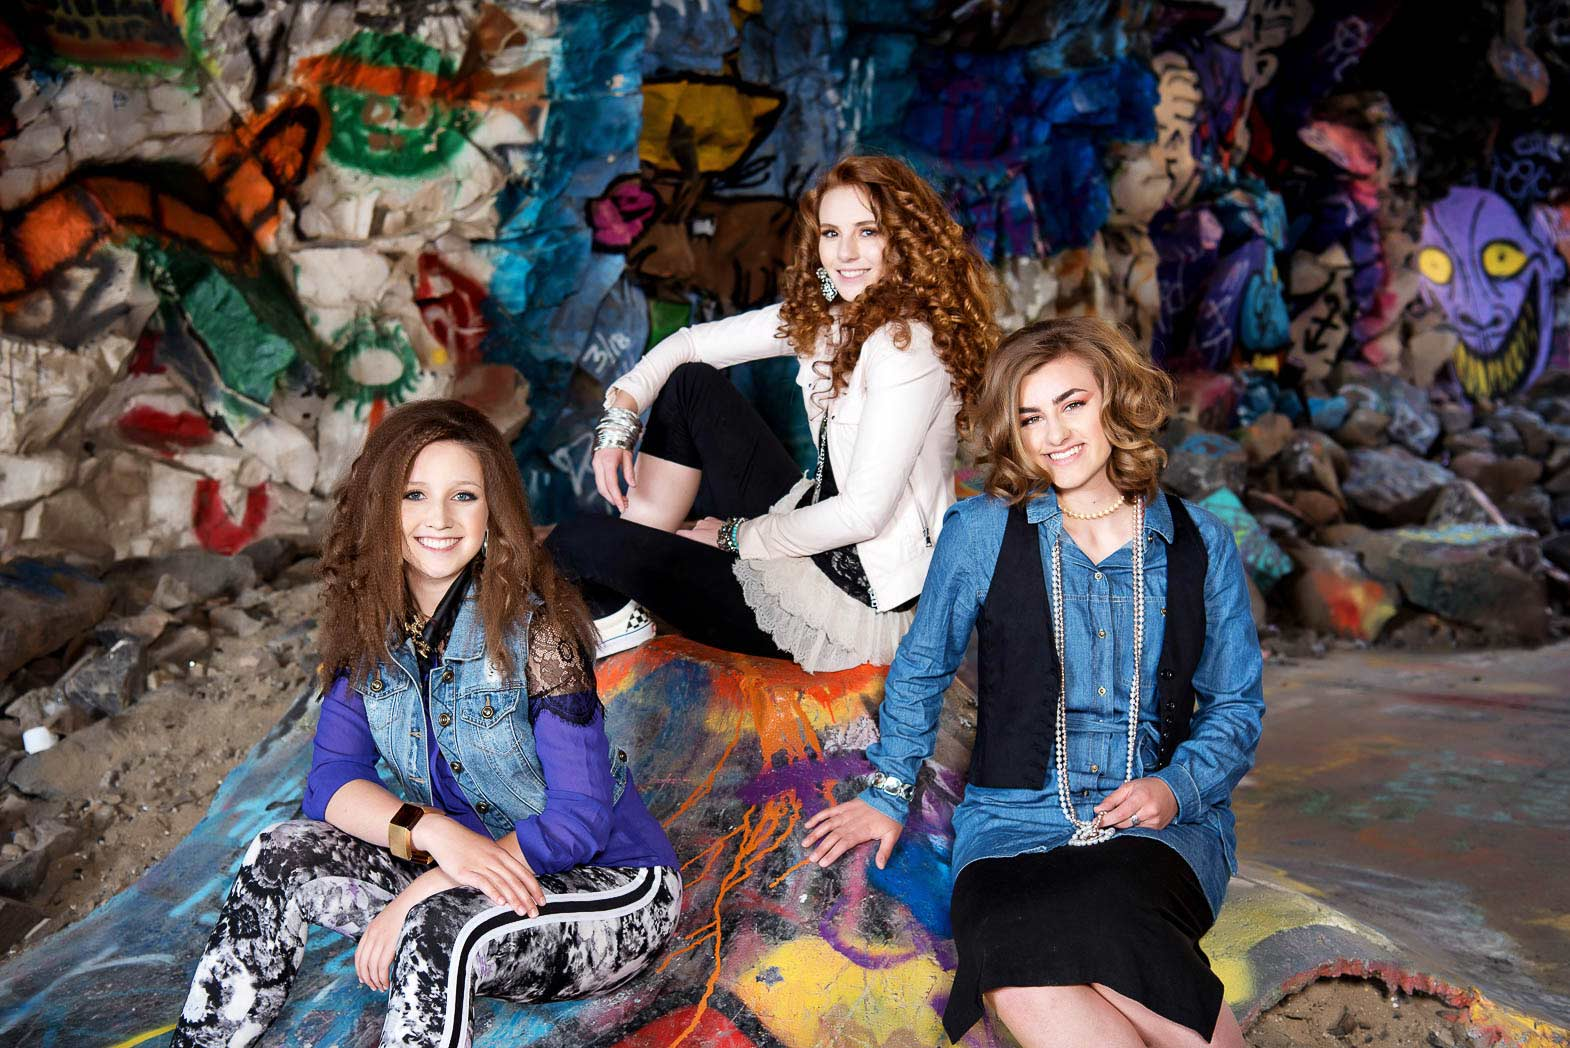 senior model group sitting together in graffiti tunnel